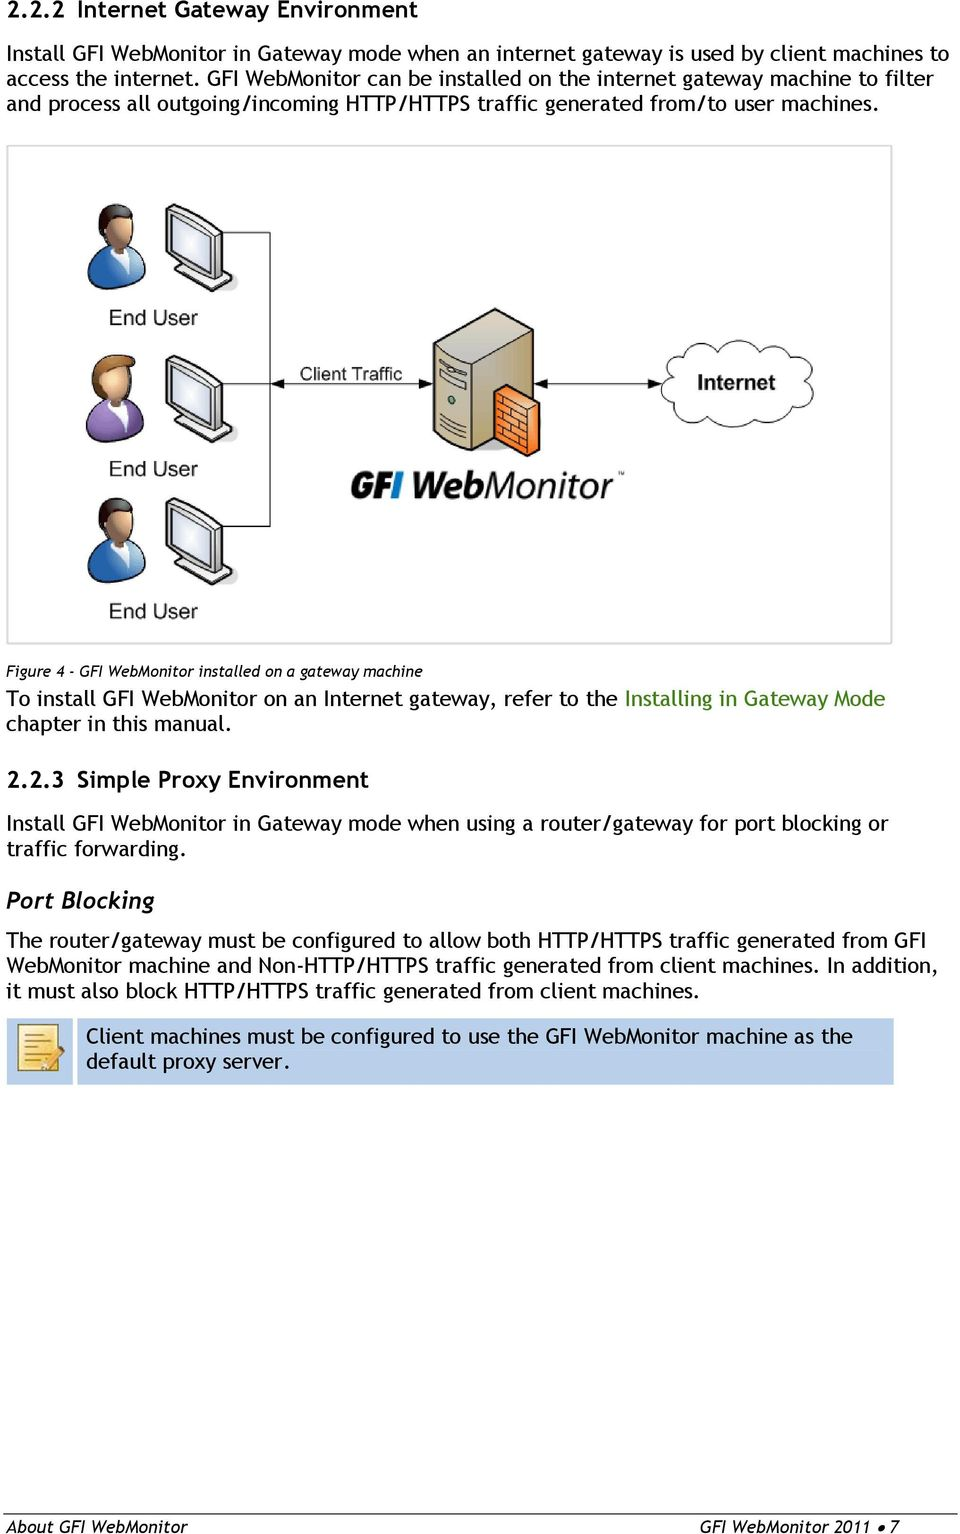 Figure 4 - GFI WebMonitor installed on a gateway machine To install GFI WebMonitor on an Internet gateway, refer to the Installing in Gateway Mode chapter in this manual. 2.